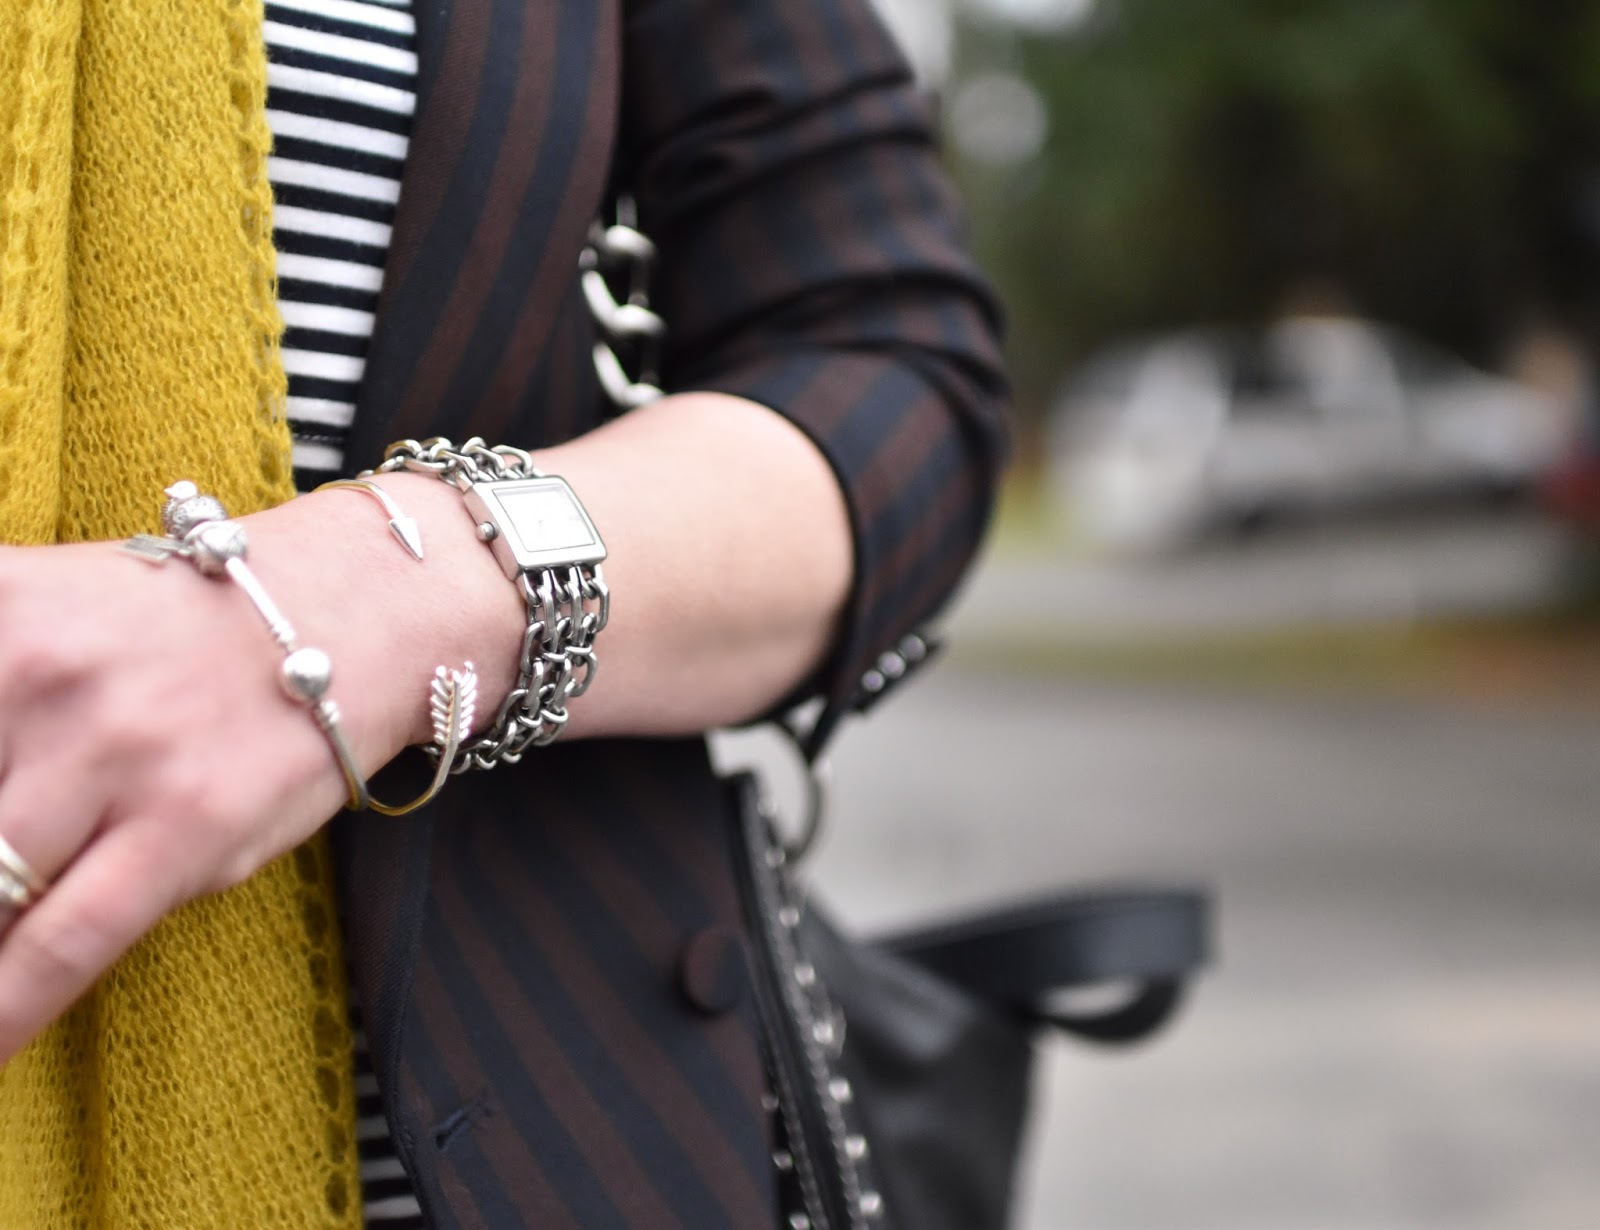 Monika Faulkner outfit inspiration - double-breasted suit jacket, striped tee, mustard scarf, stacked bracelets